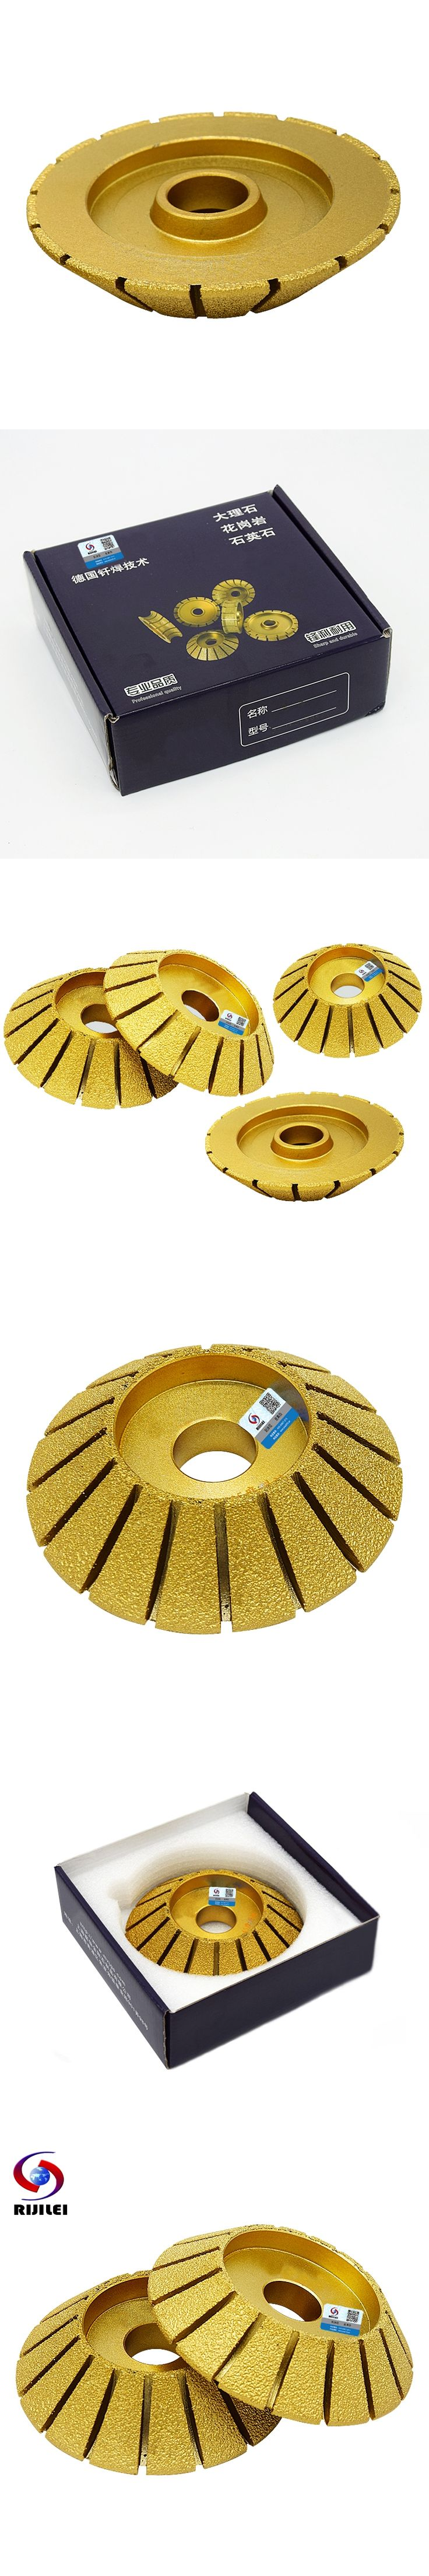 RIJILEI 140*30*35 Marble abrasive Disc 45 degree Single bevel brazed diamond grinding head diamond profile wheel electrical MX41